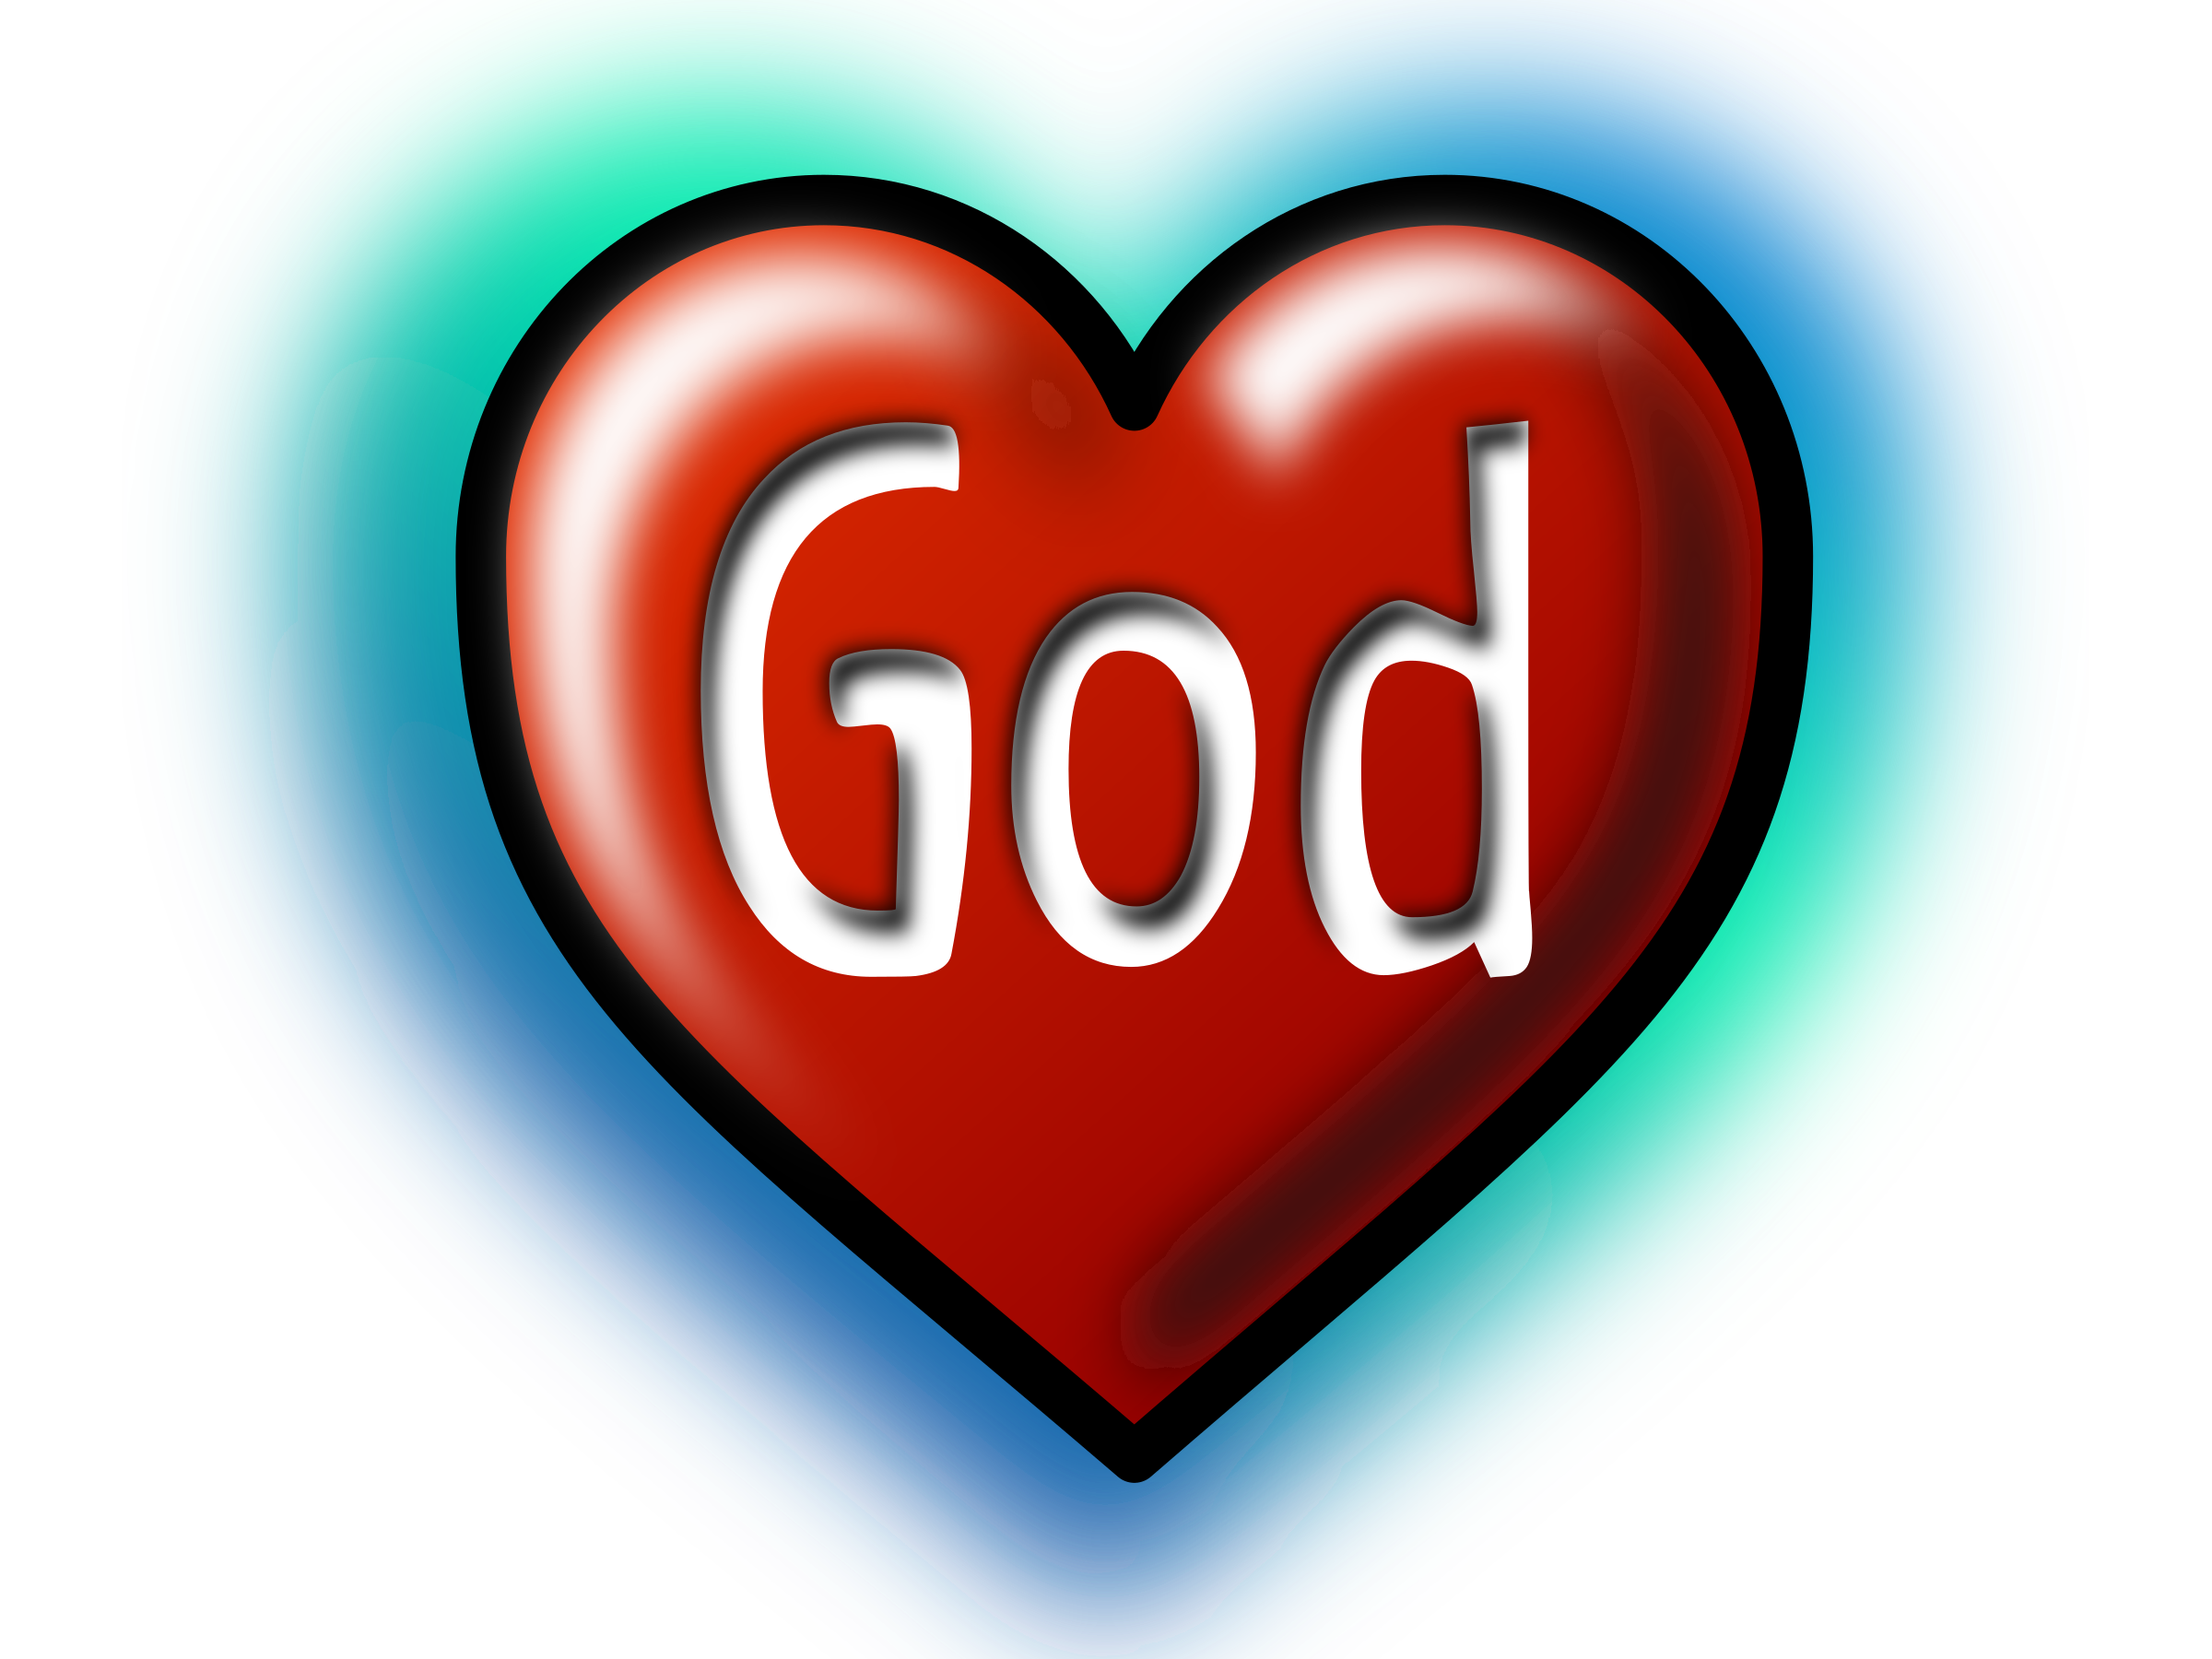 God clipart transparent. Heart text converted to